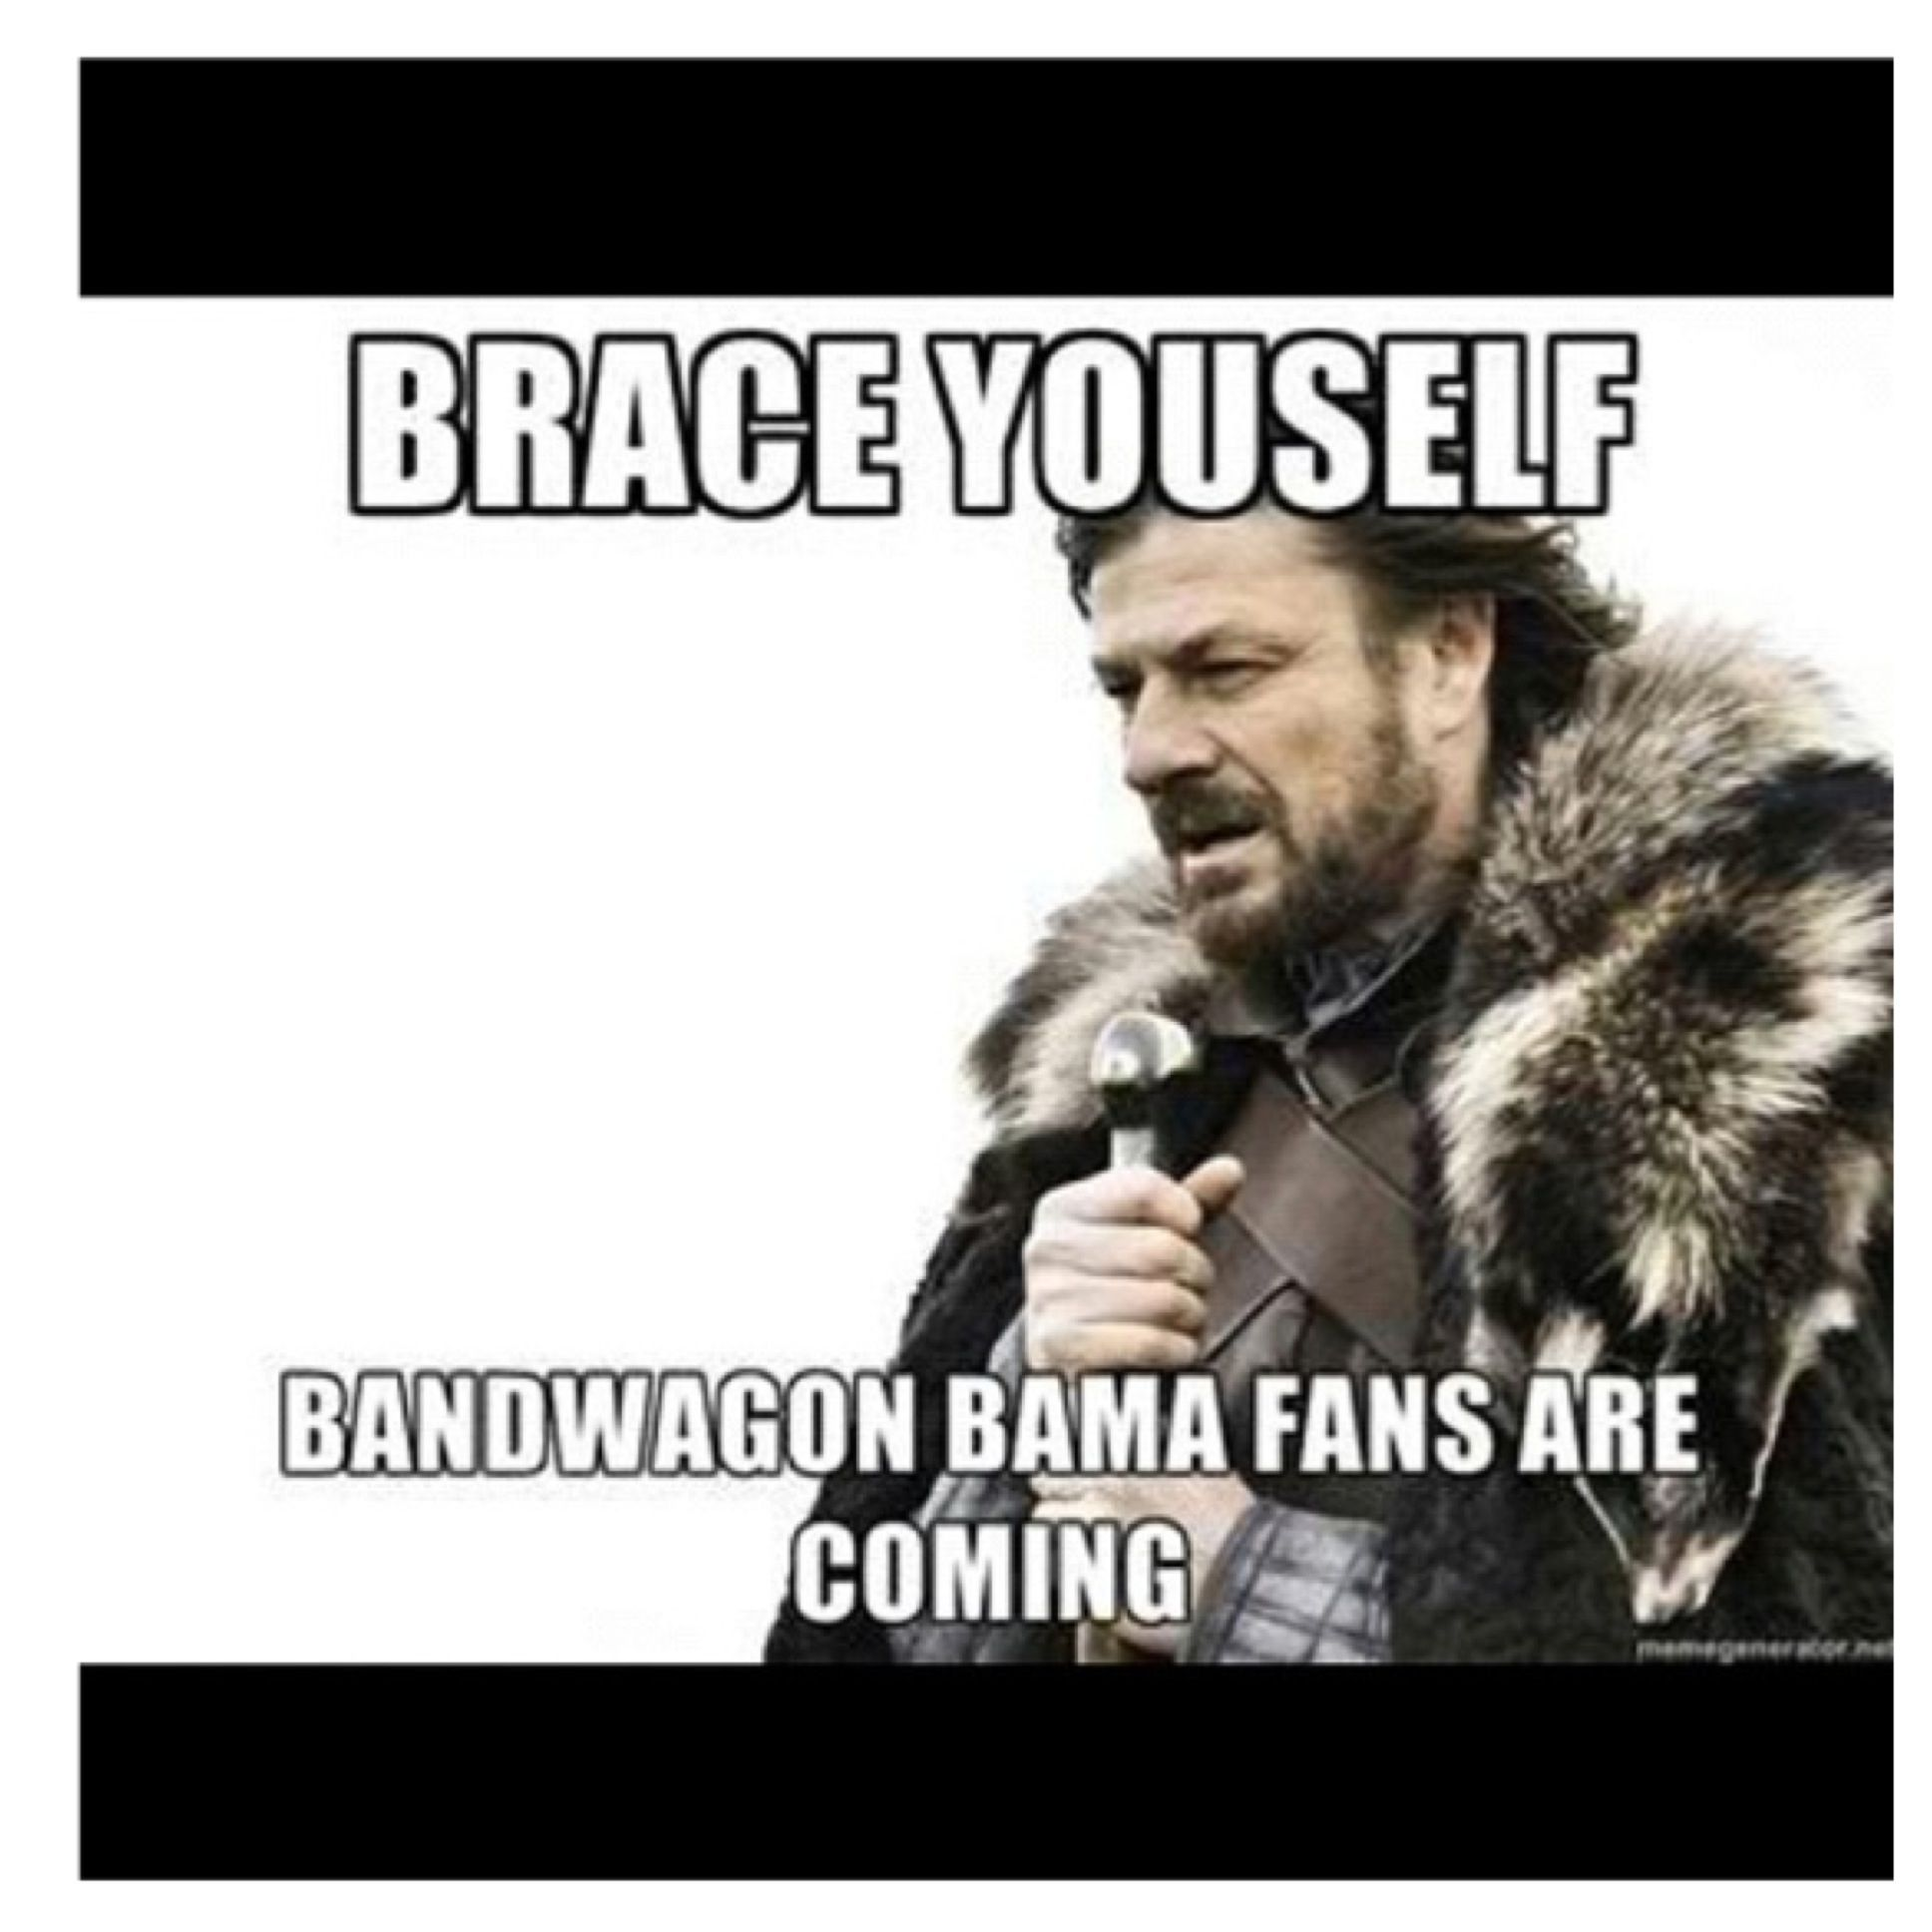 Brace yourselves...Bama bandwagon fans are coming! Band